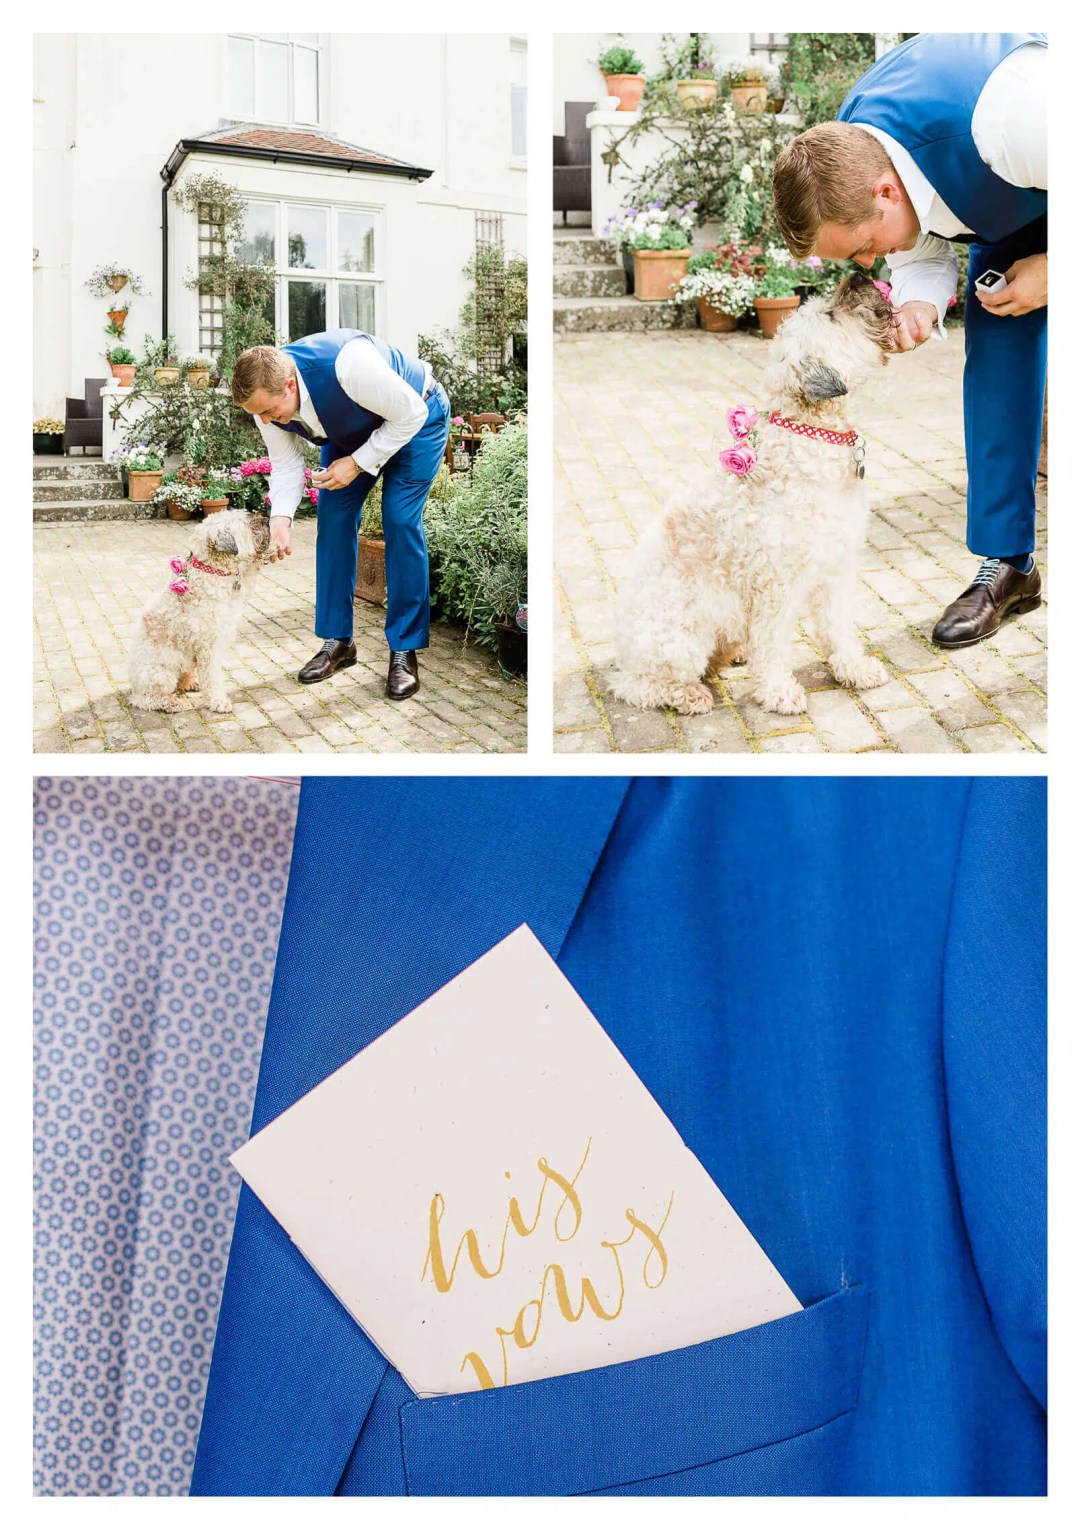 Groom getting ready for wedding with dog | West Sussex Wedding Photographer in East Grinstead